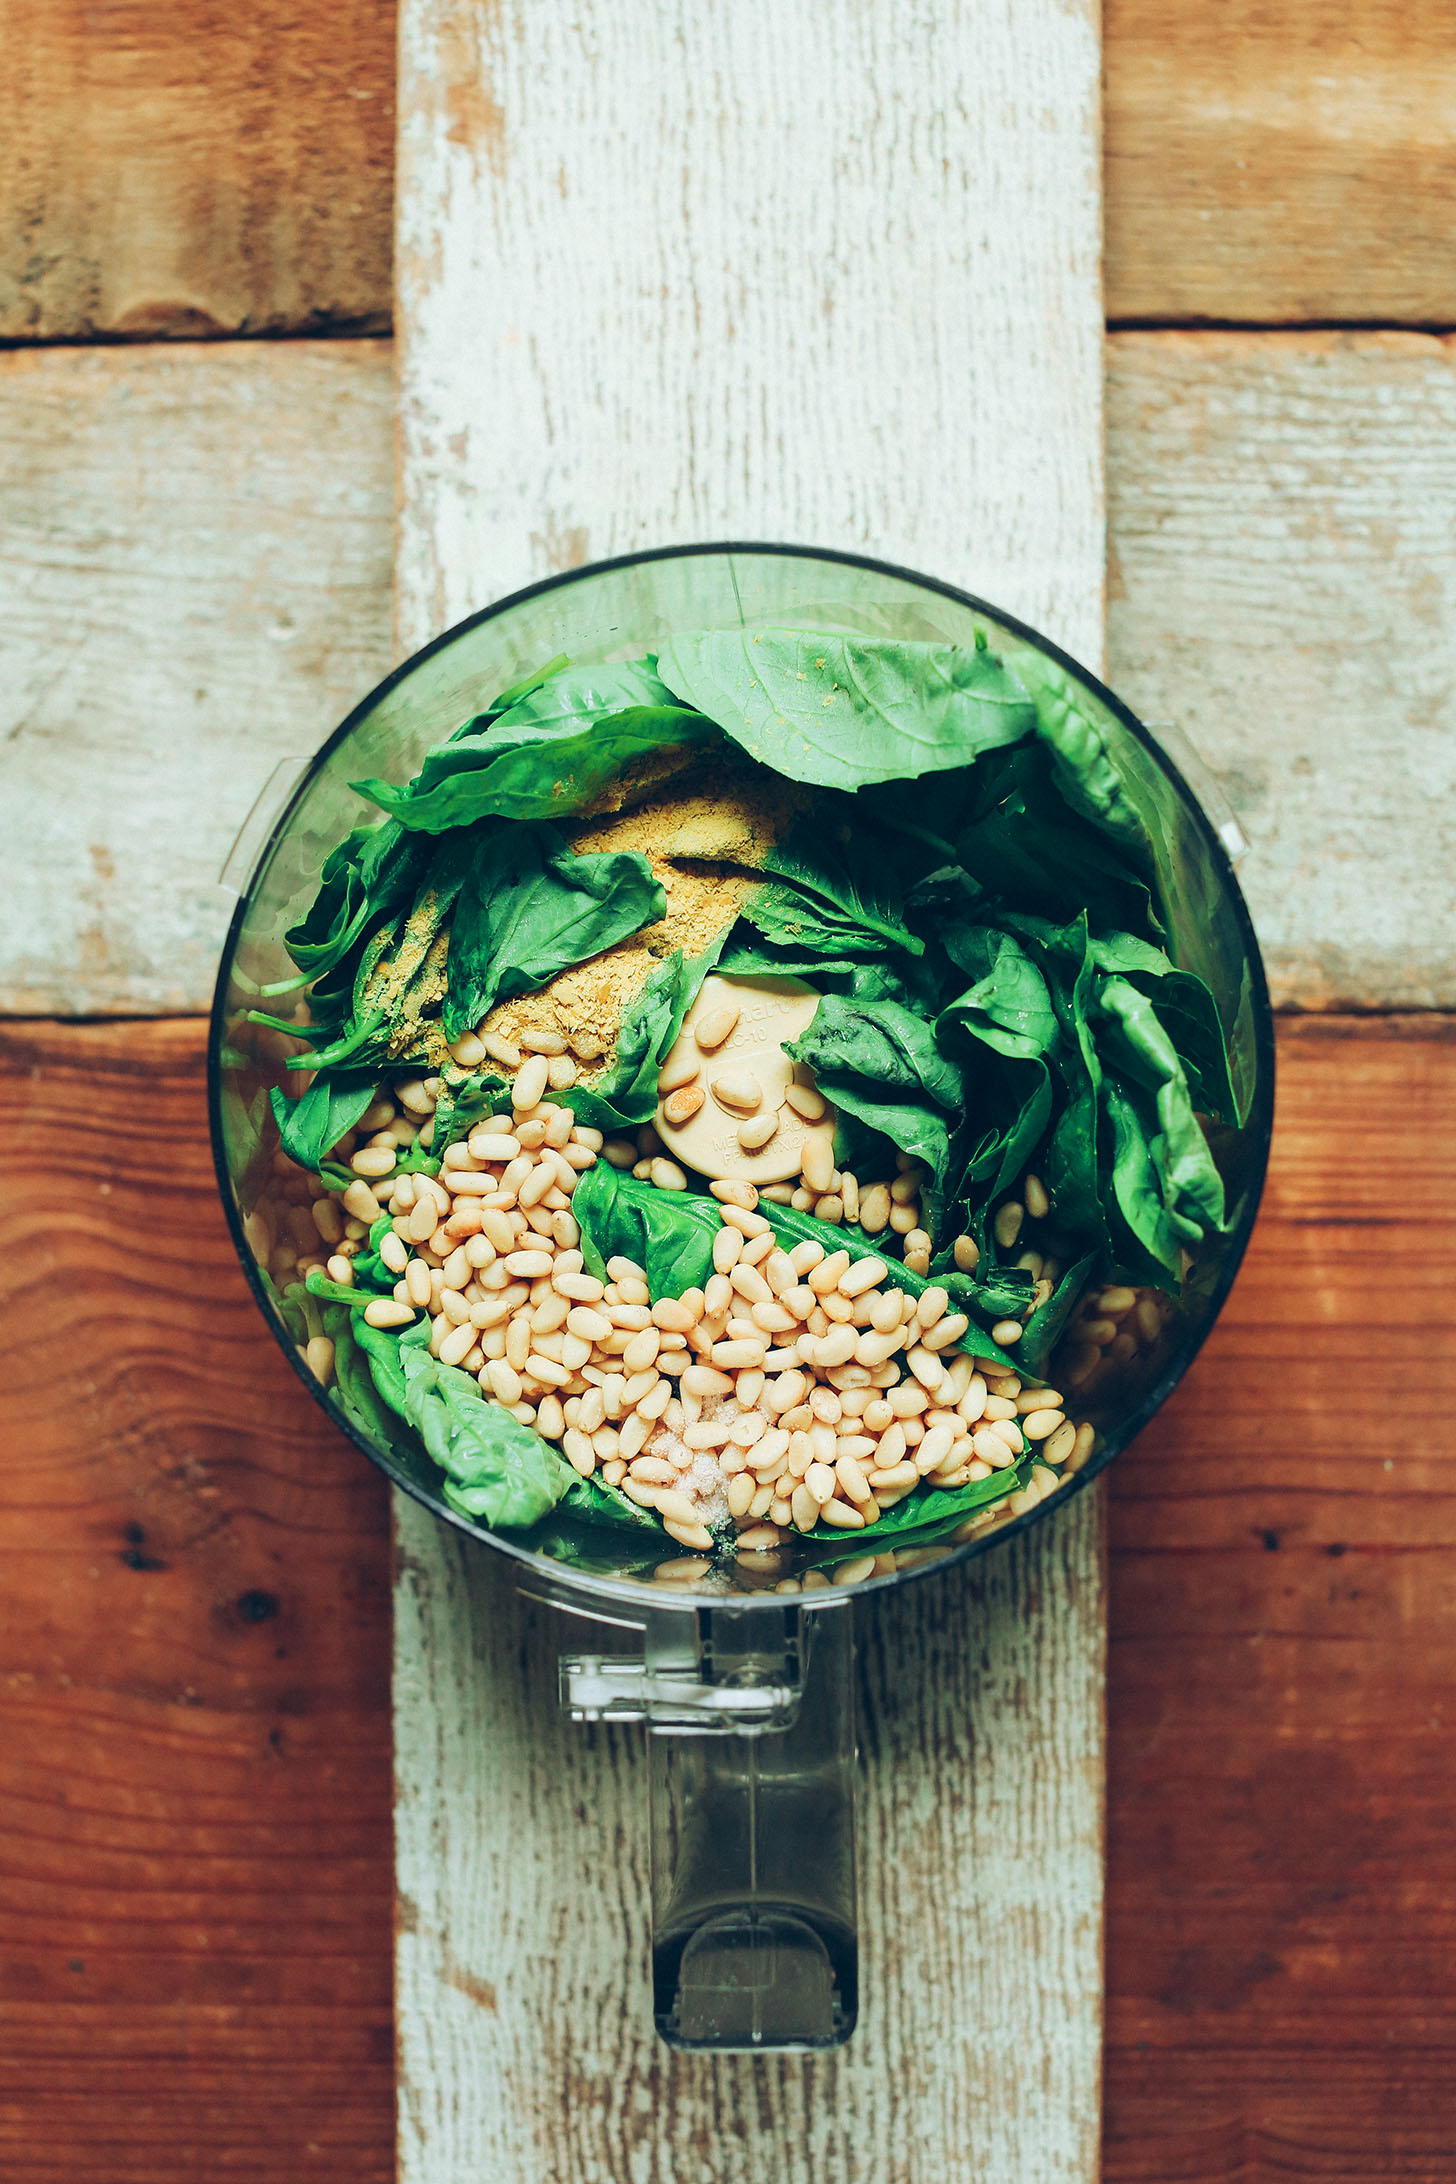 Food processor filled with ingredients for making homemade gluten-free vegan basil pesto